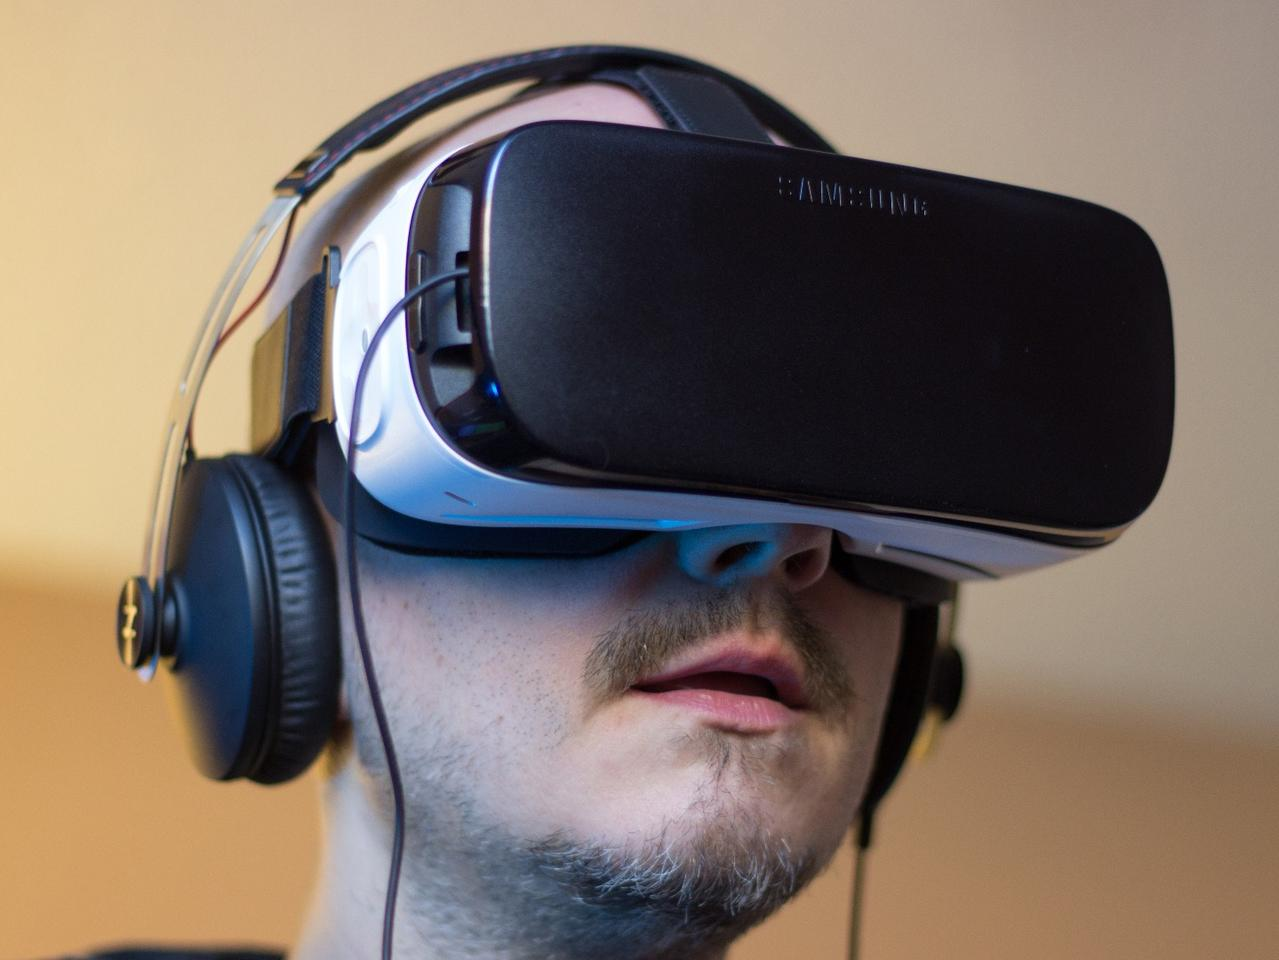 You may look funny wearing a VR headset, but it's worth it